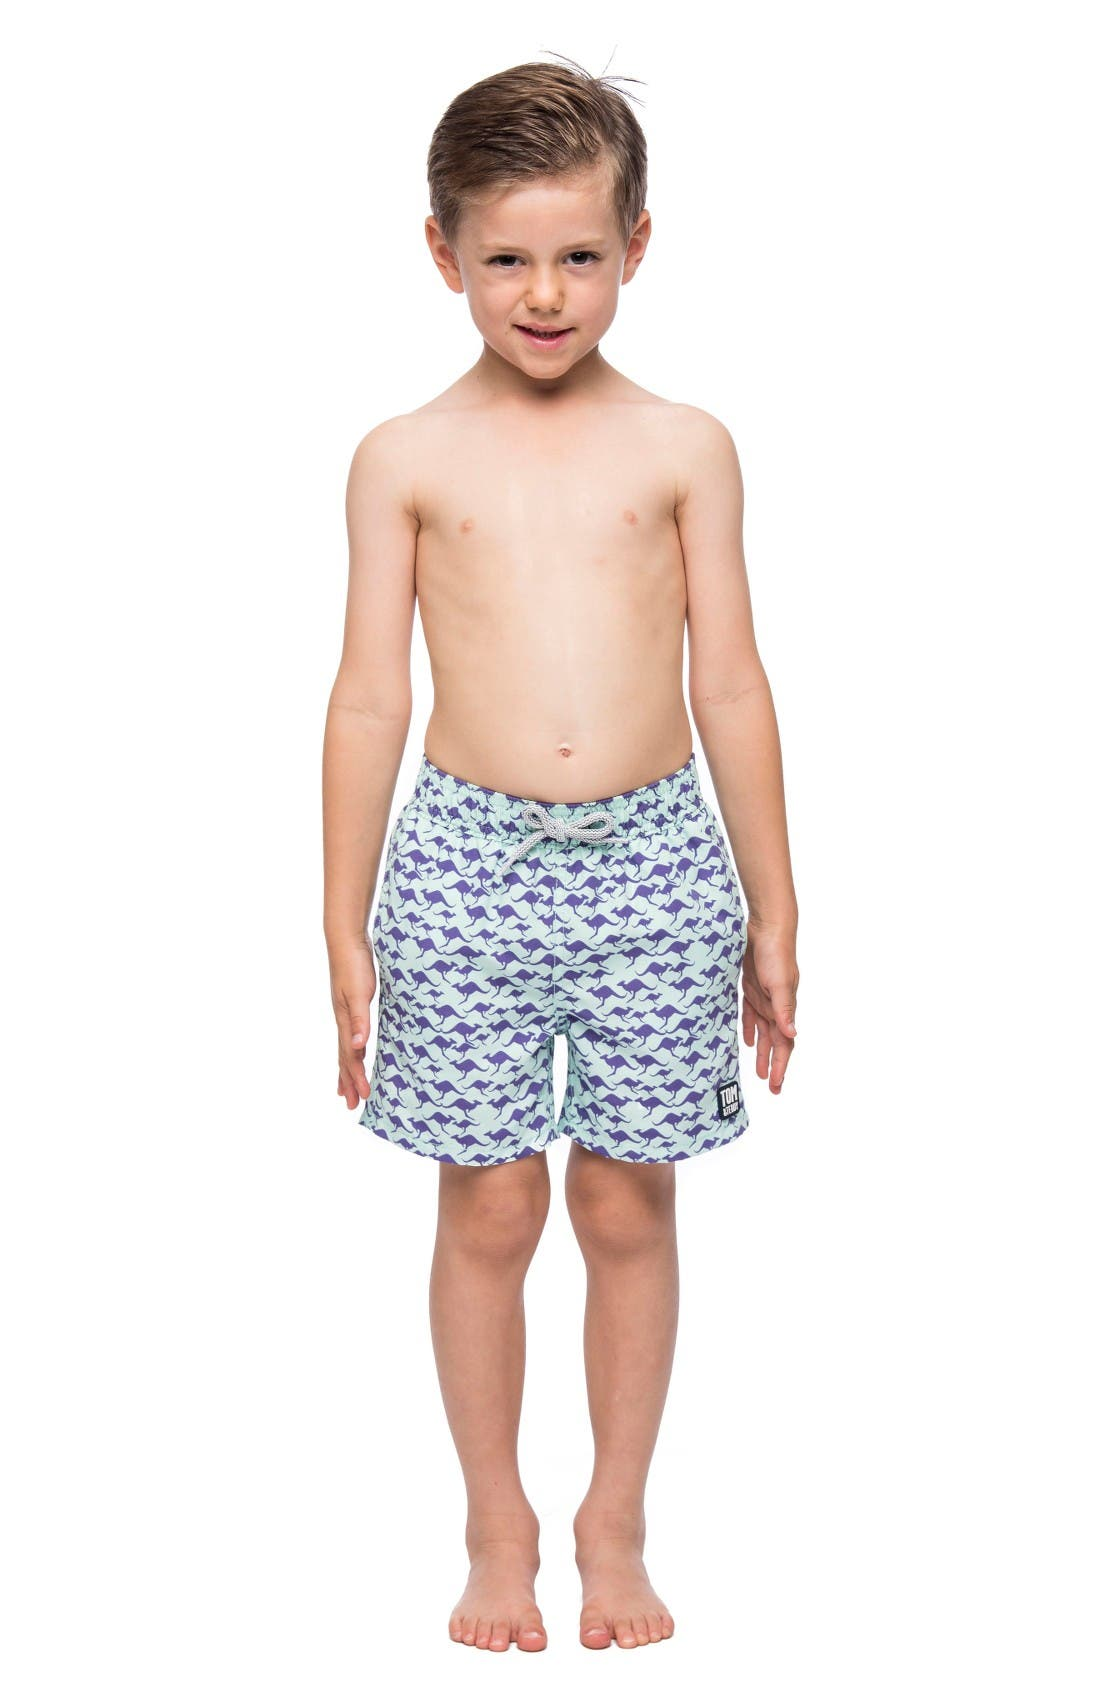 Tom & Teddy Kangaroo Swim Trunks (Toddler Boys, Little Boys & Big Boys)